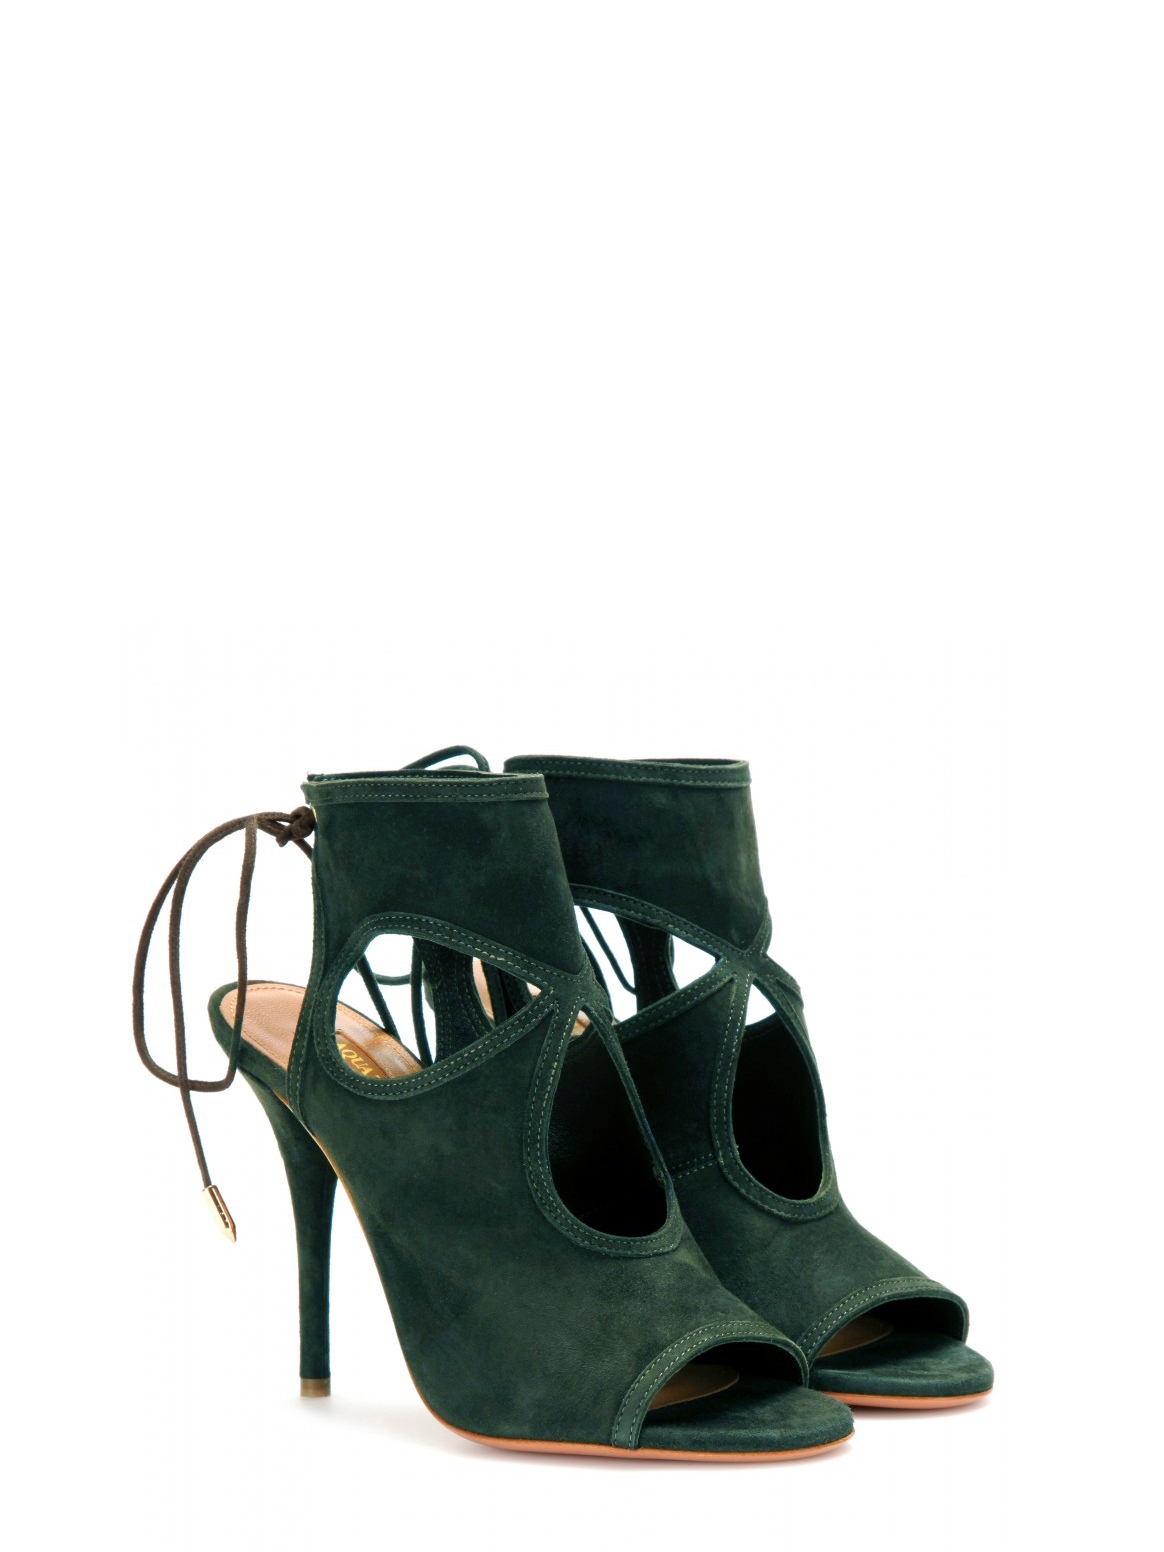 8441795d676c SEXY THING cut out dark green suede leather thin heel sandals NEW Retail  price €460 ...